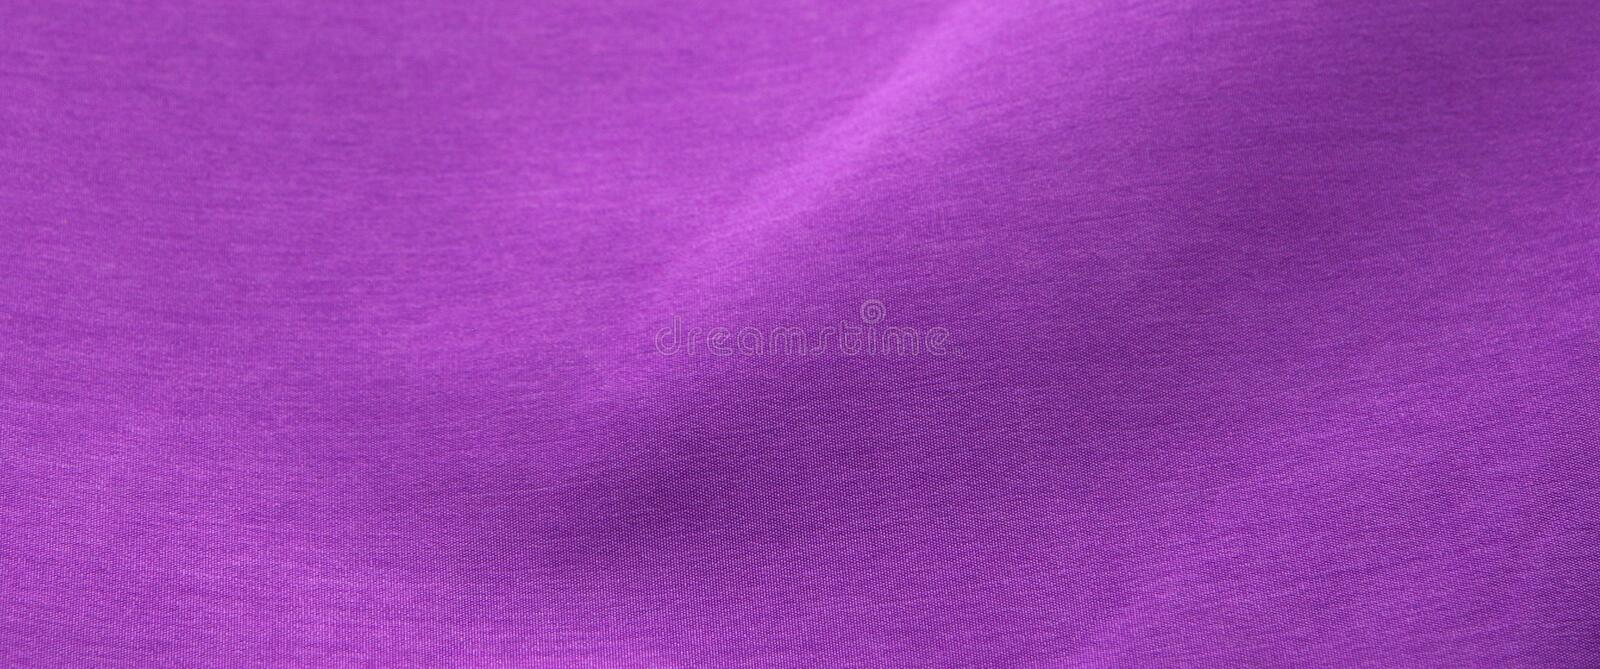 Purple Fabric With Folds Royalty Free Stock Images